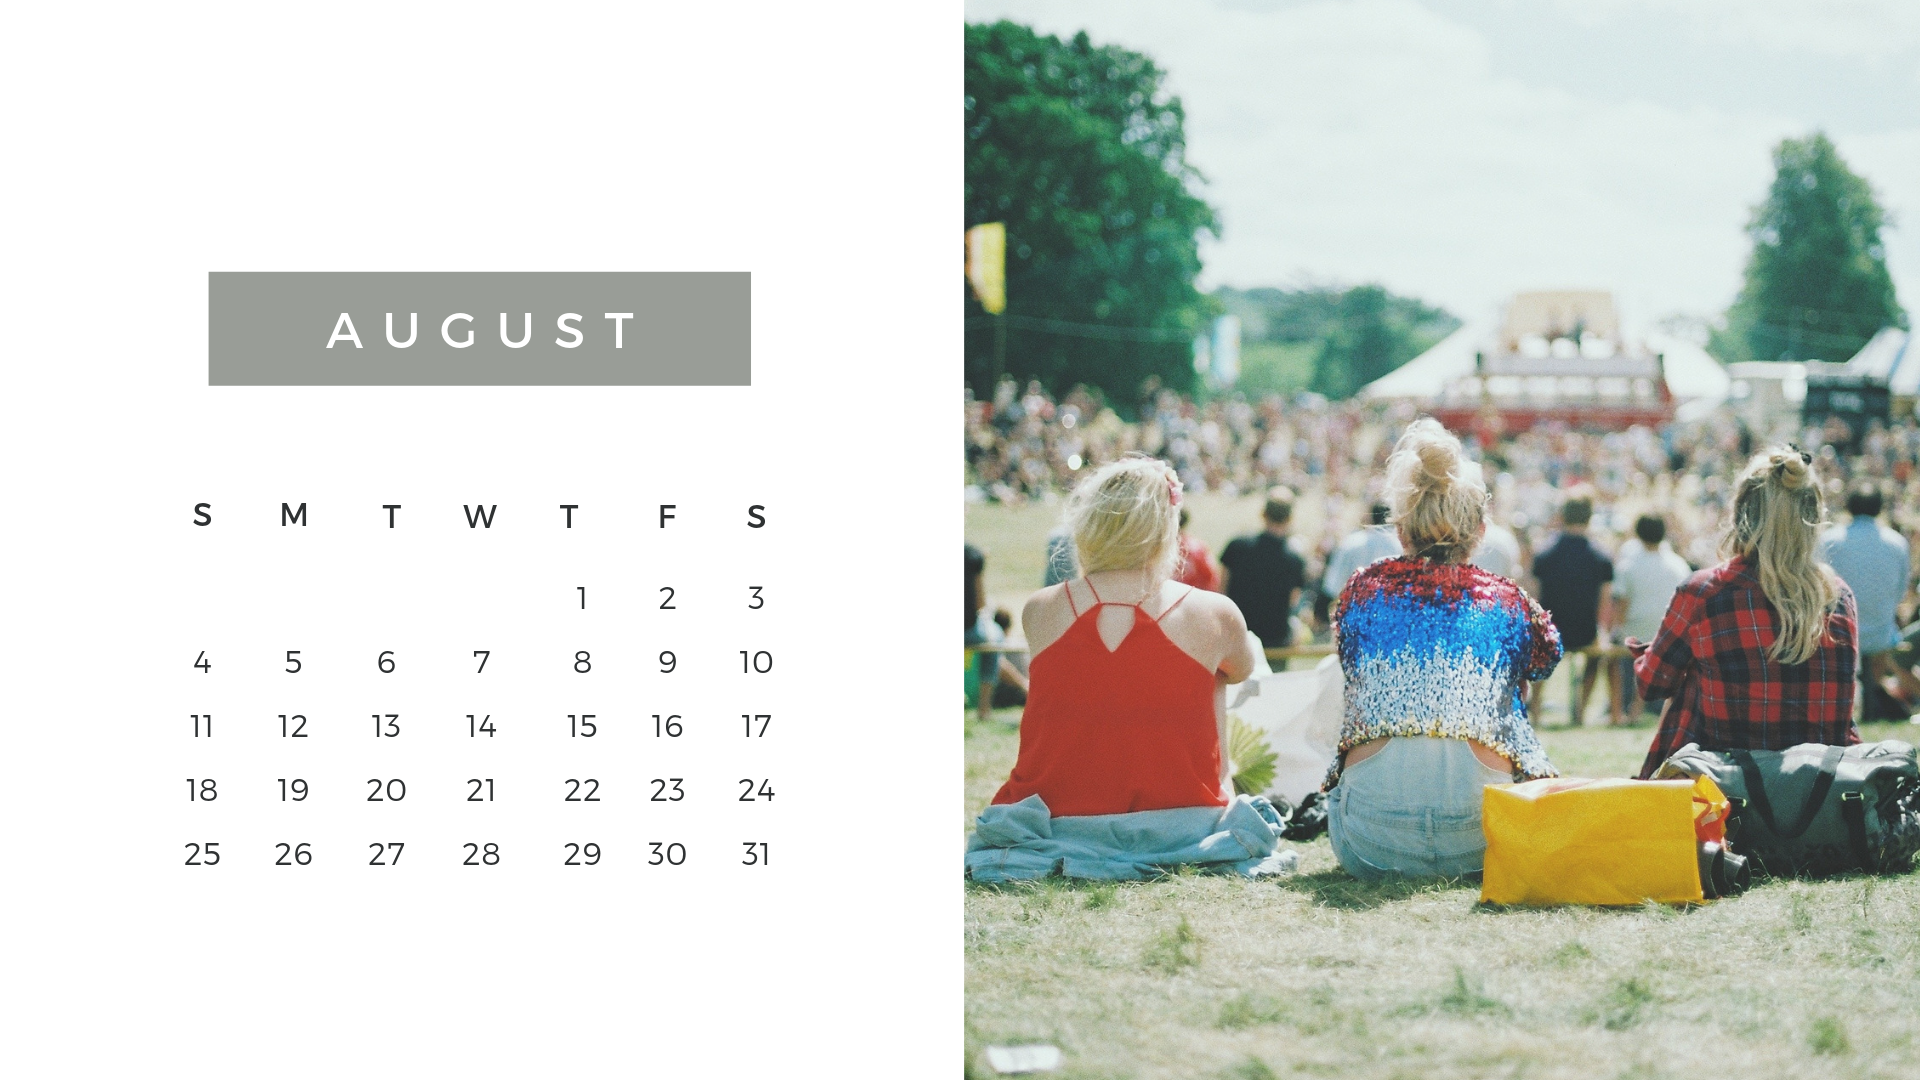 chicago-festival-calendar-august-kourtney-murray-chicago-real-estate.png